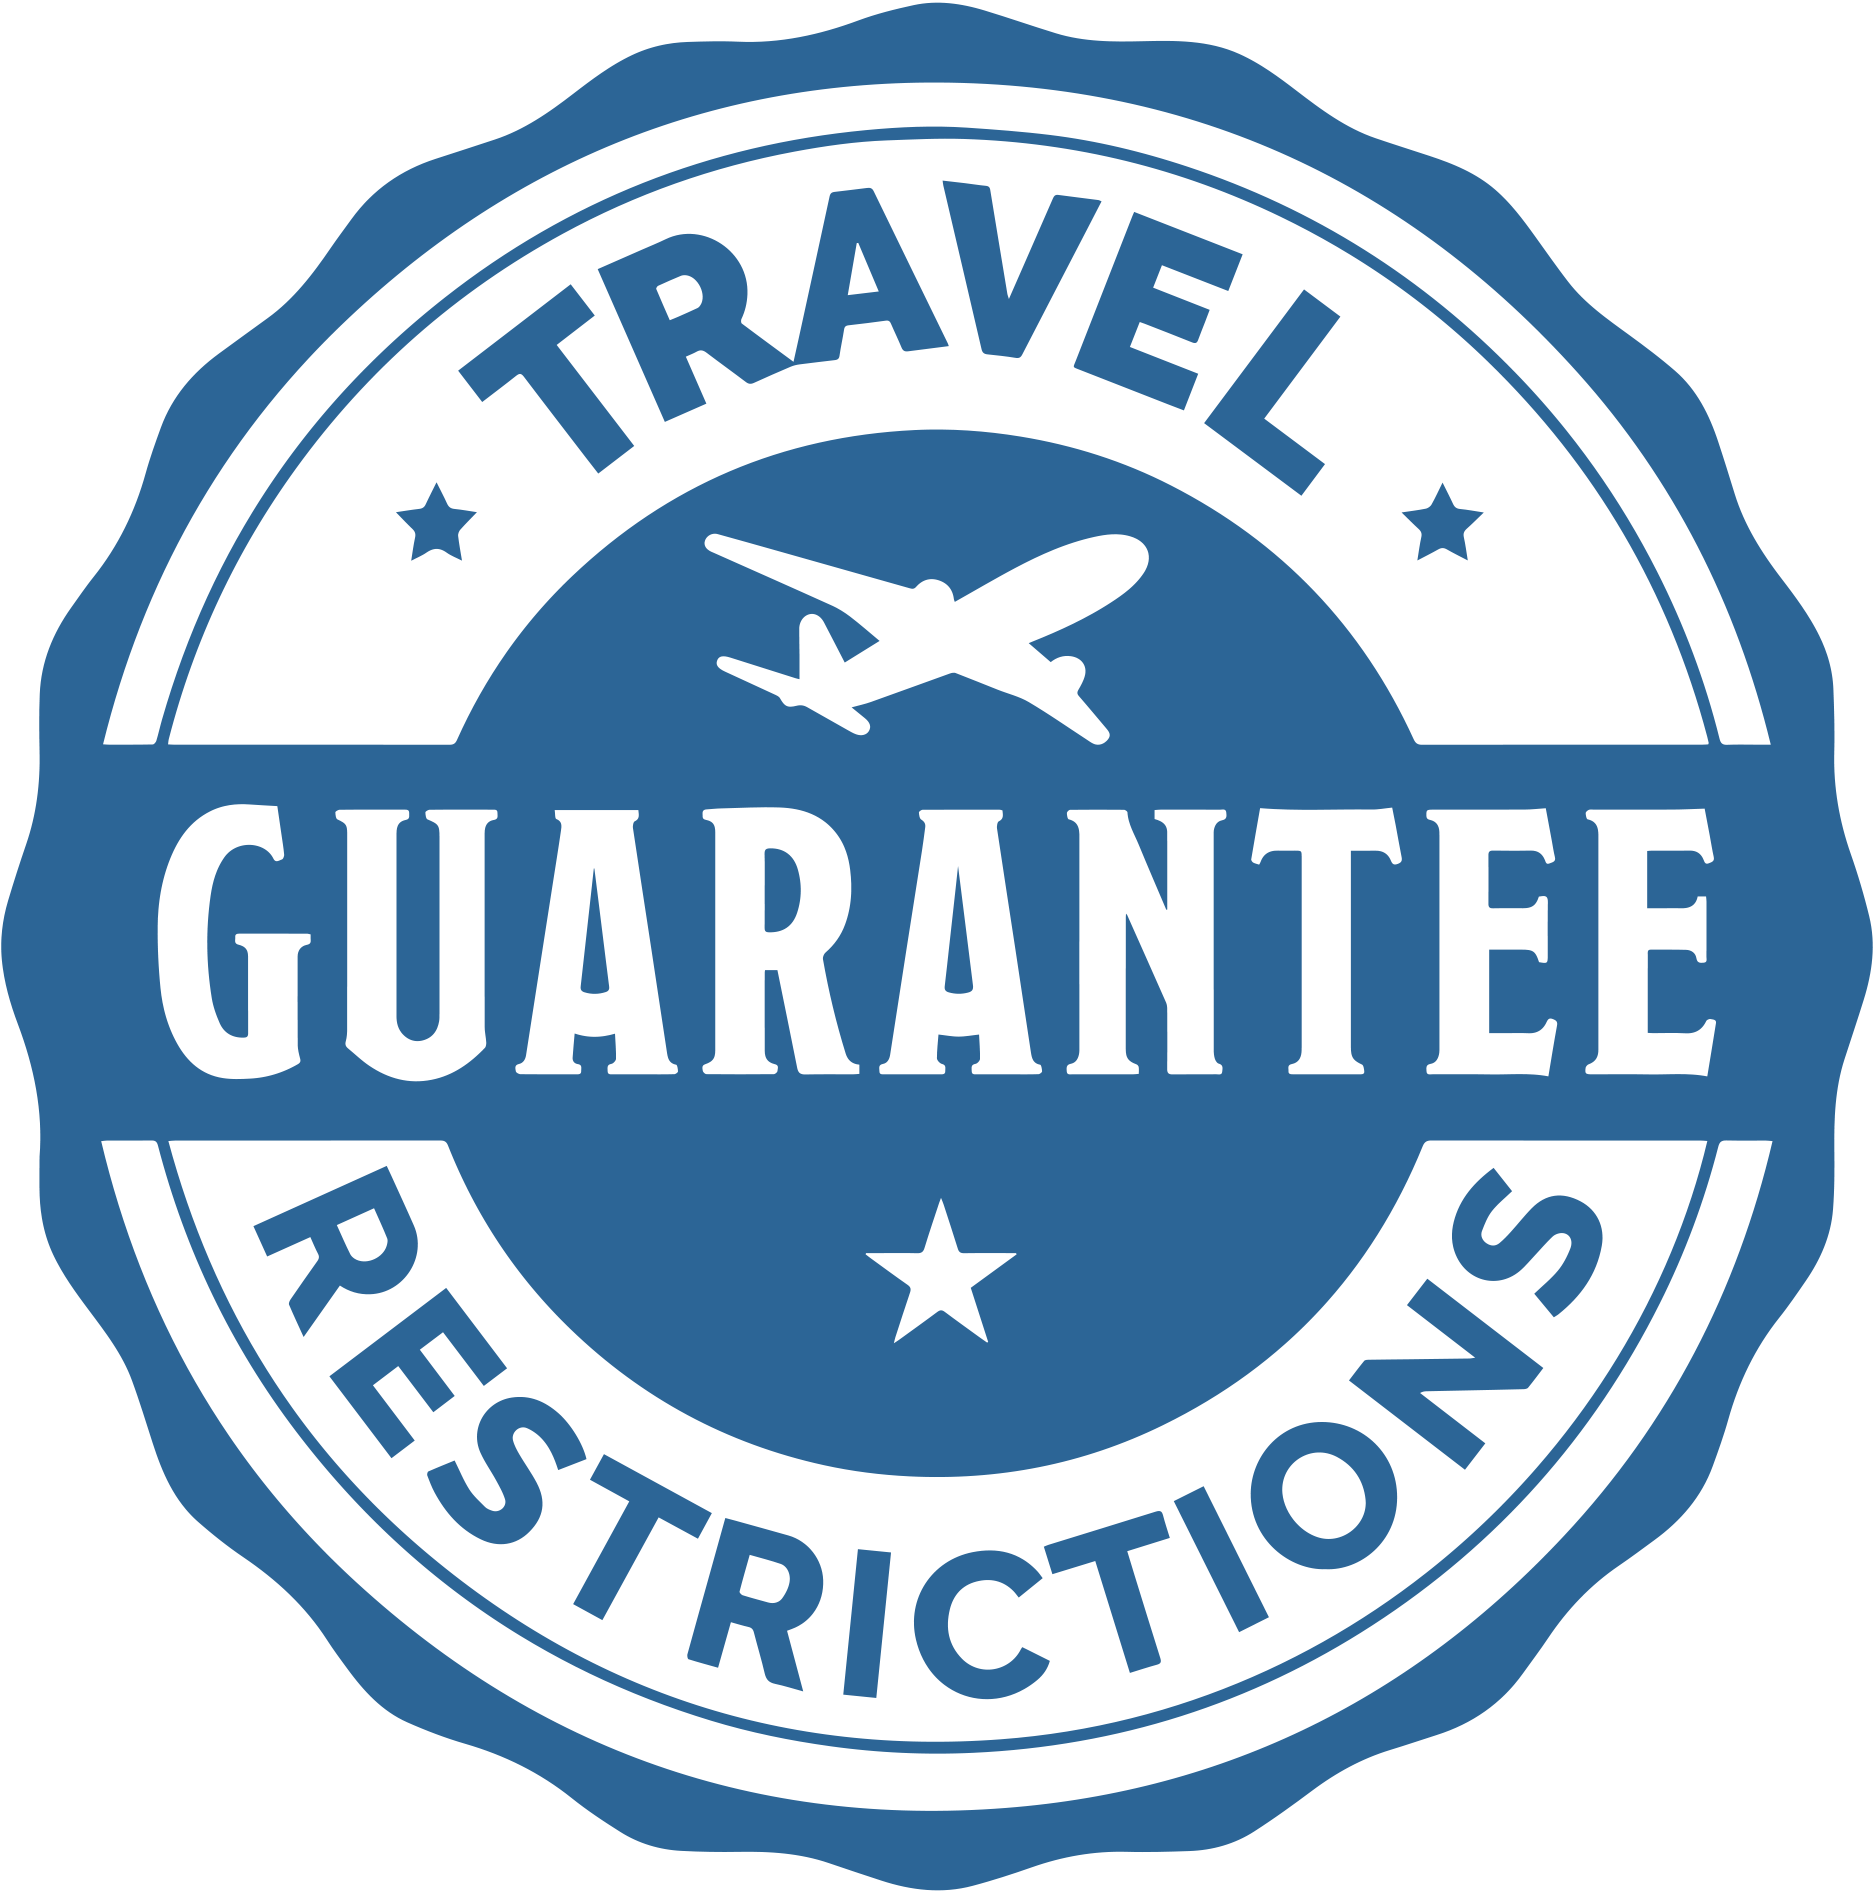 Travel Restrictions Guarantee